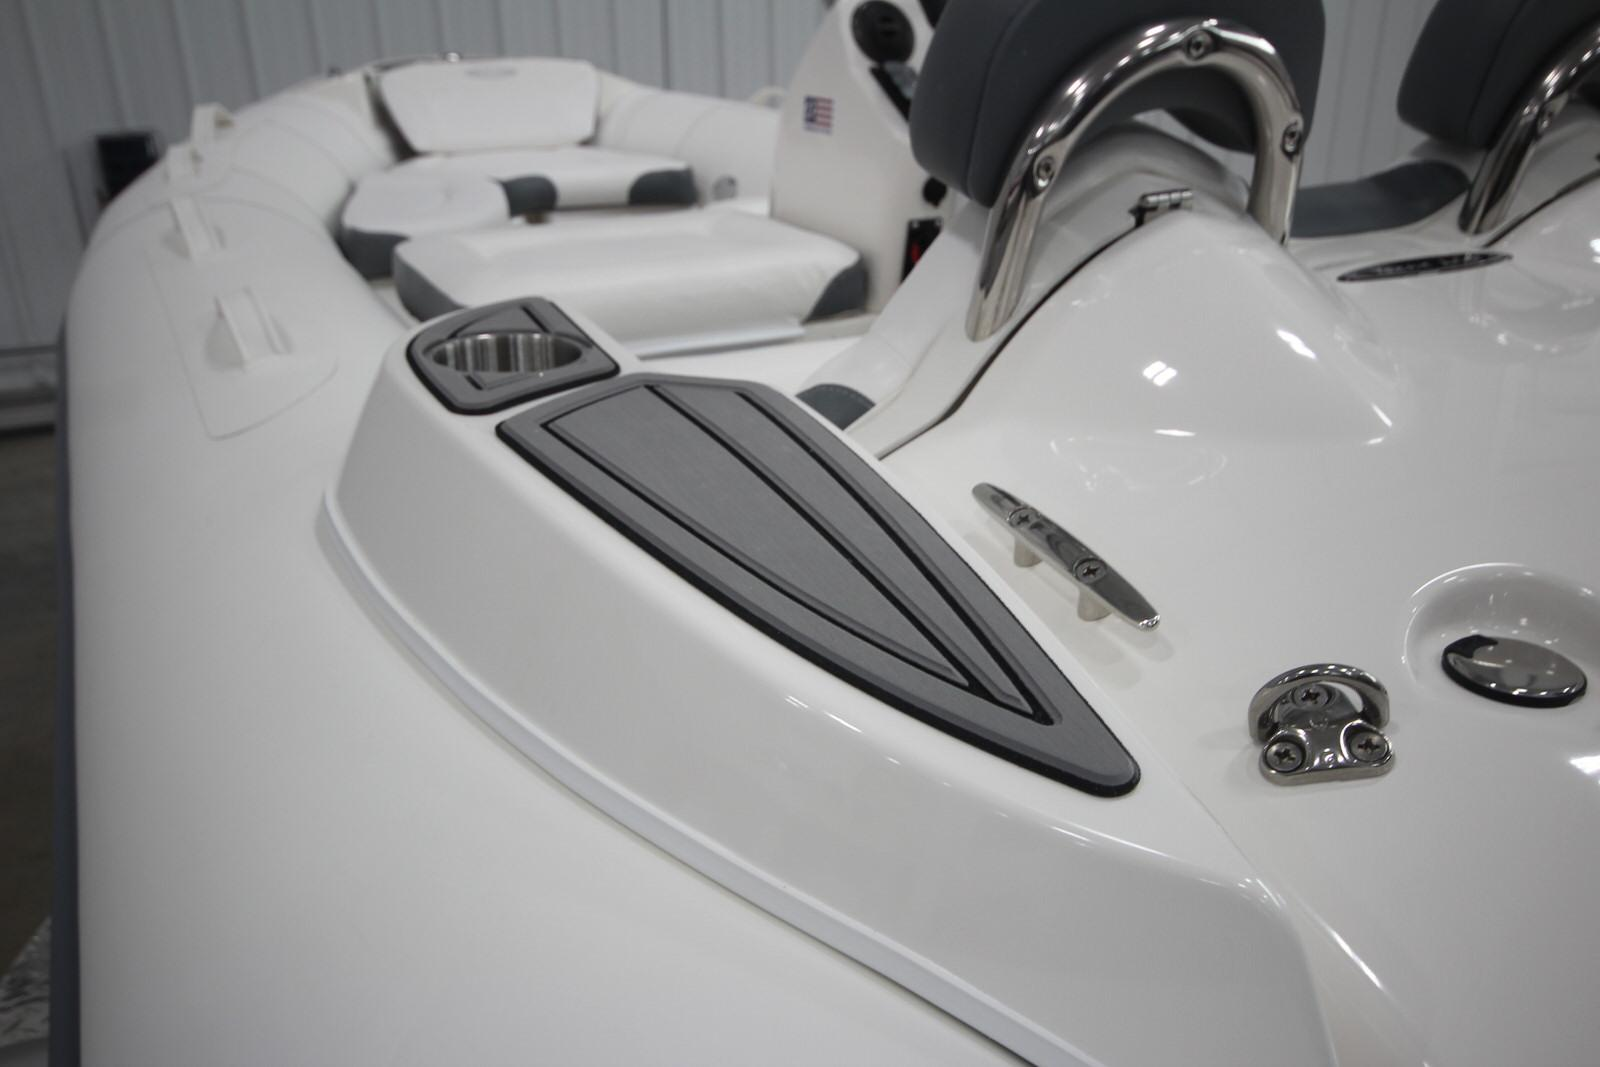 2022 Zodiac Yachtline 440 Deluxe NEO GL Edition 60hp On Order, Image 23